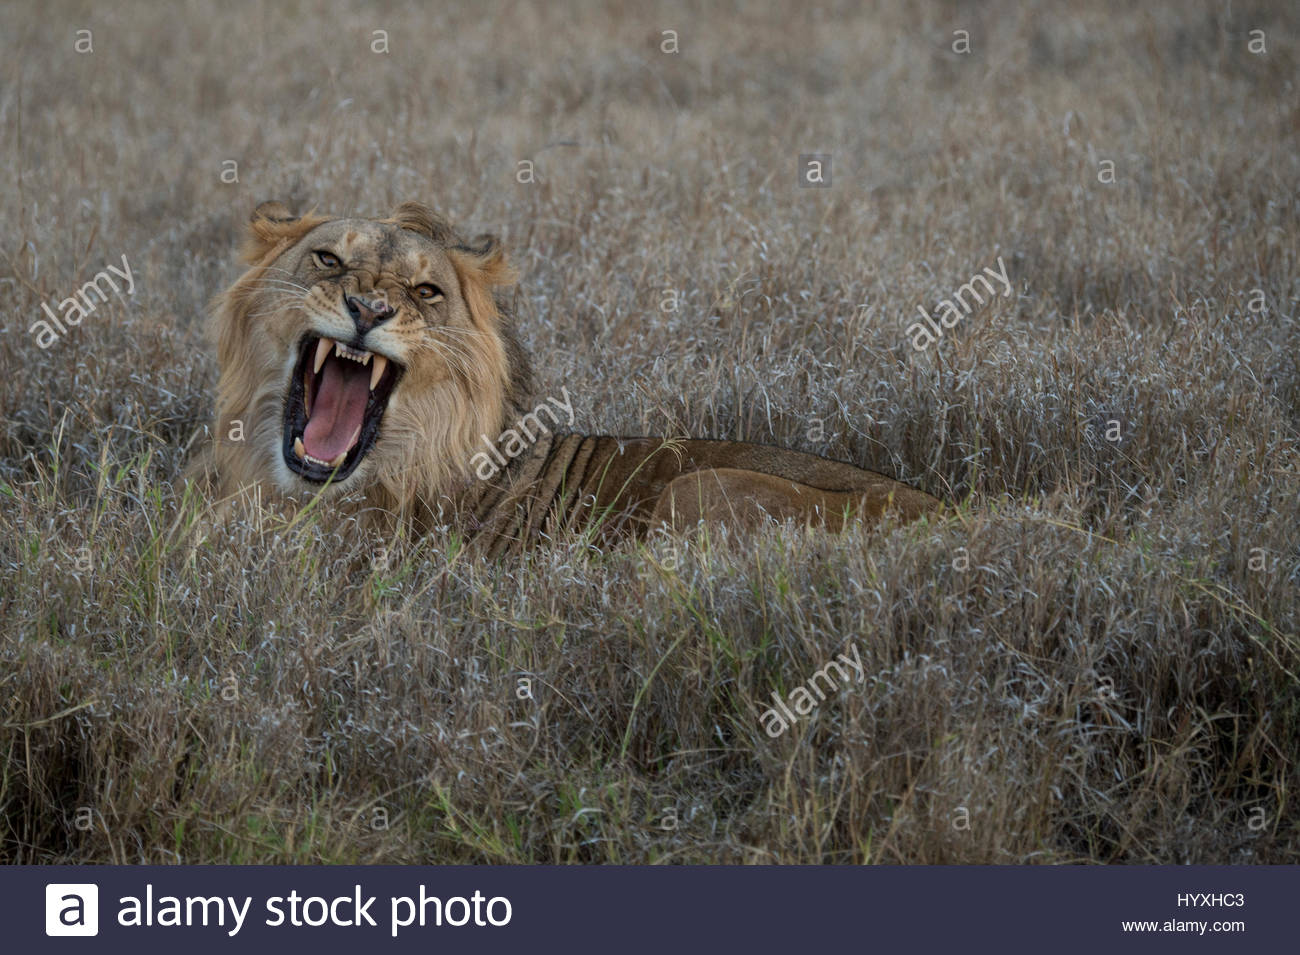 A male lion, at rest in soft grasses, snarling or yawning at the camera. - Stock Image